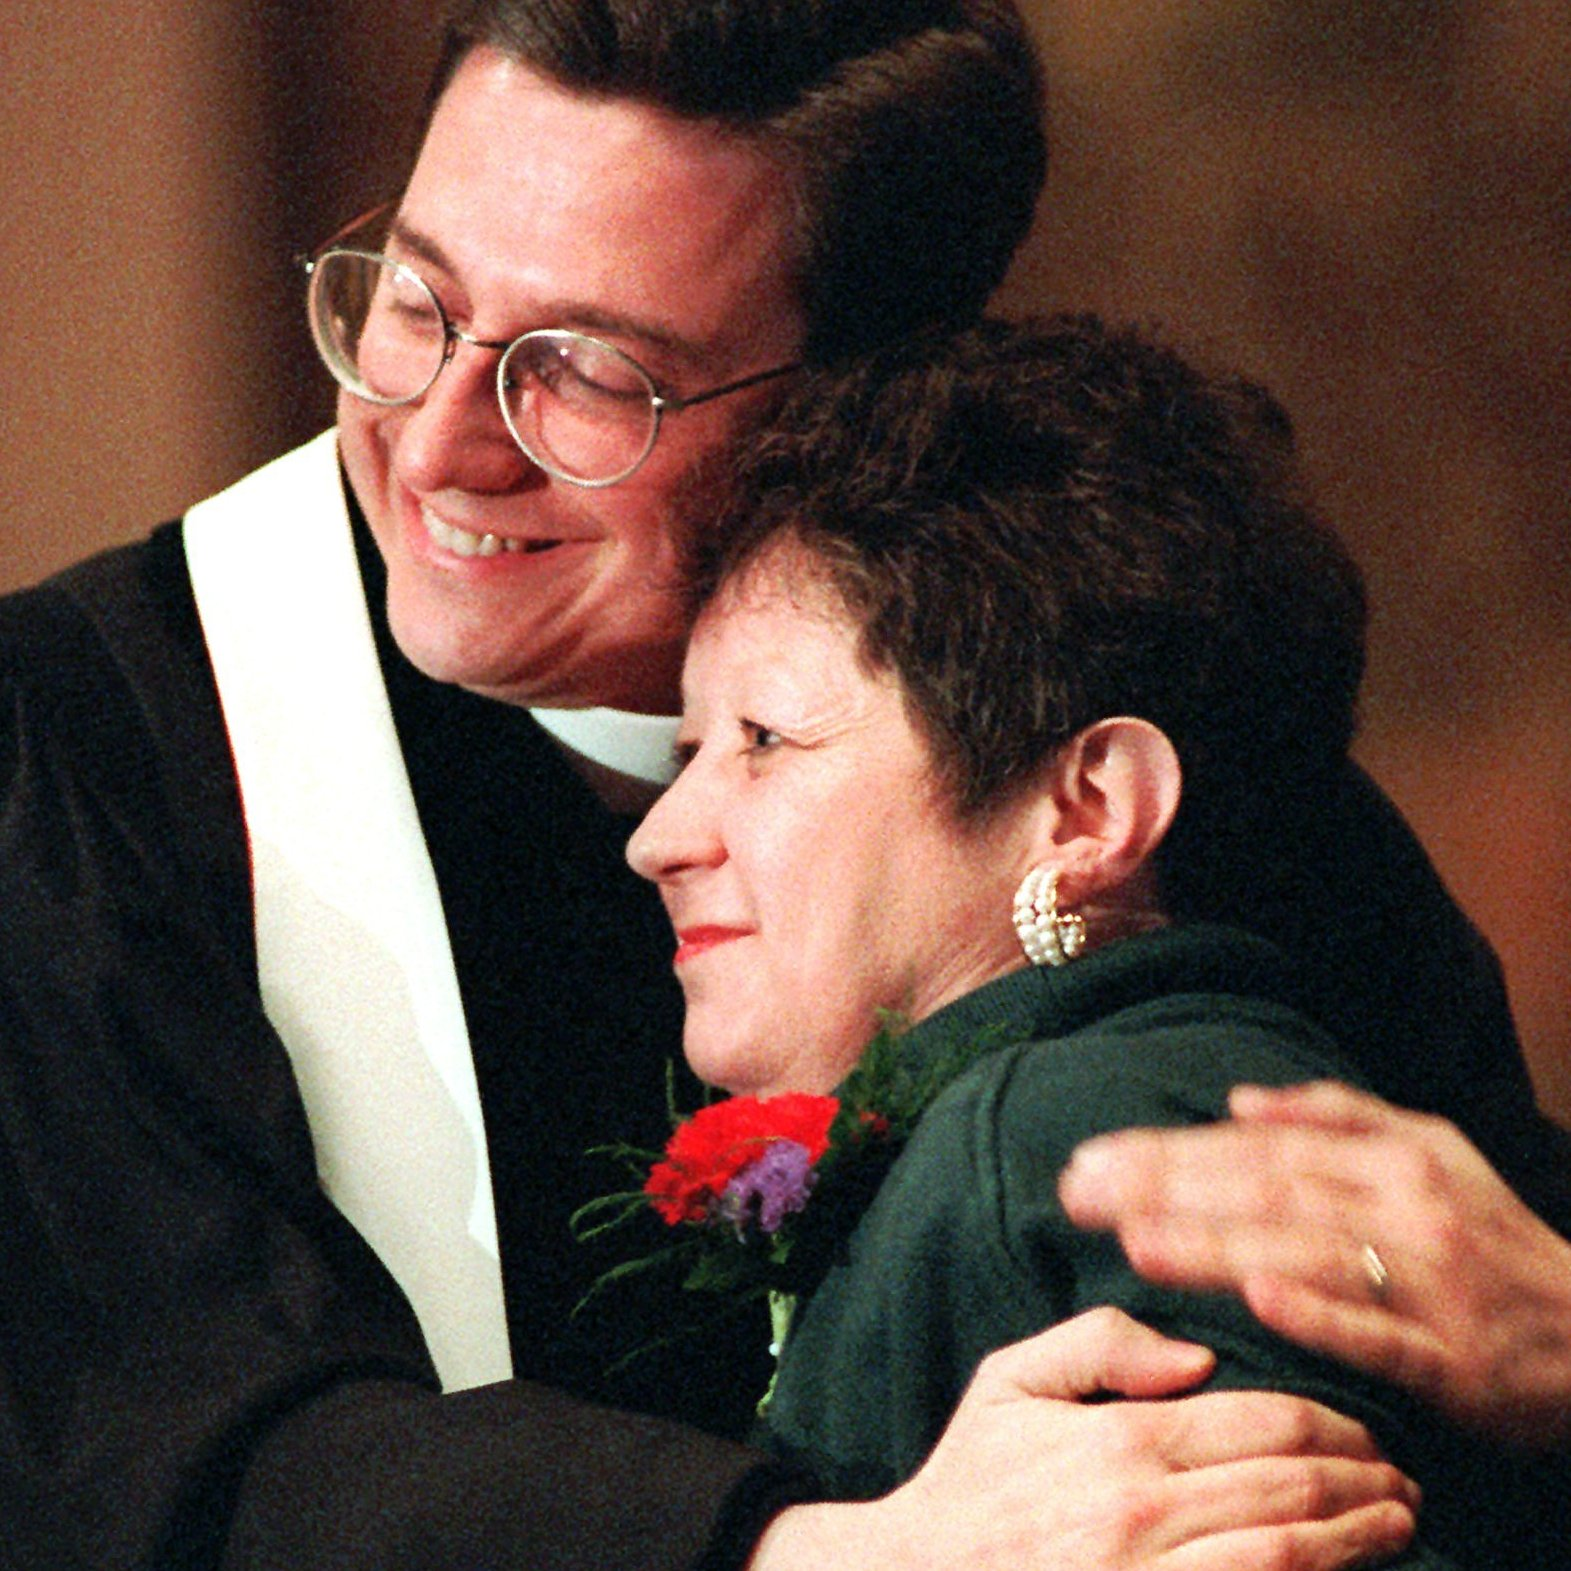 "Norma McCorvey, the ""Jane Roe"" of the 1973 decision, embraces the Rev. Robert L. Schenck of the National Clergy Council before she addresses a memorial service at Georgetown University in Washington, D.C., on Jan. 21, 1996. A year earlier McCorvey shocked abortion-rights advocates by becoming a spokeswoman for the other side of the debate, stating she no longer supported abortion rights."